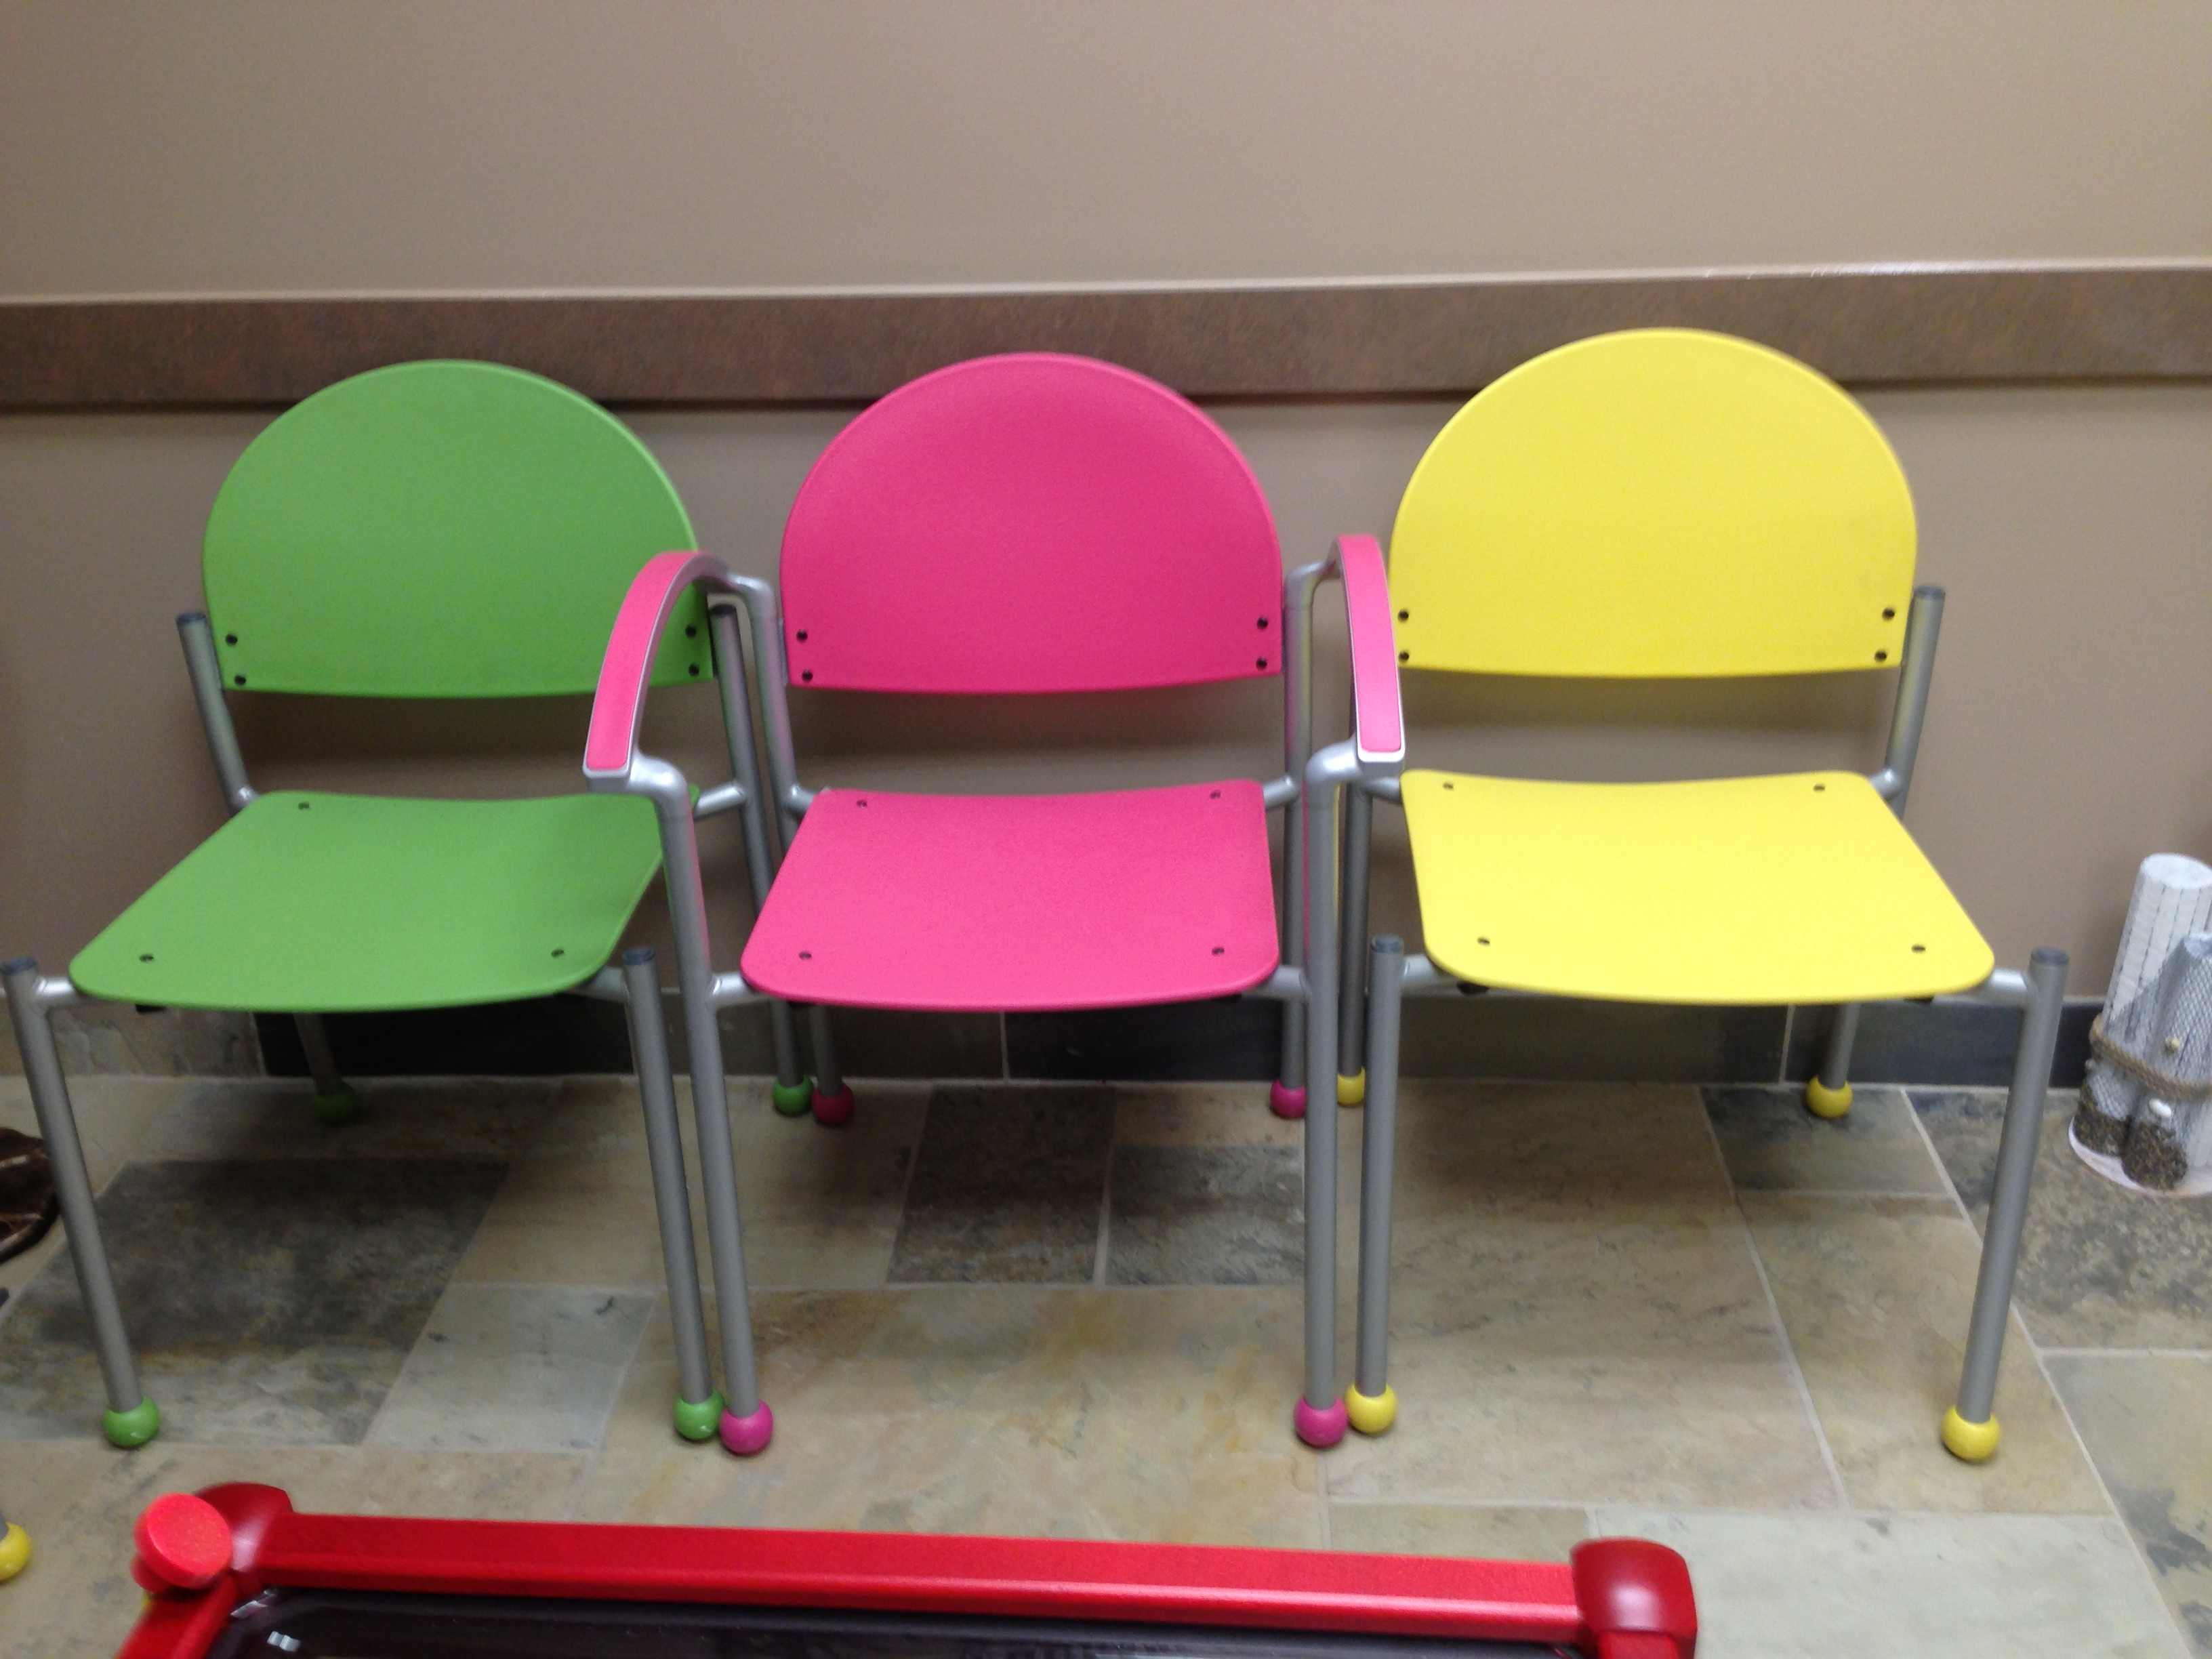 Colorful Desk Chairs Colorful Waiting Room With Bola Chairs Affordable And